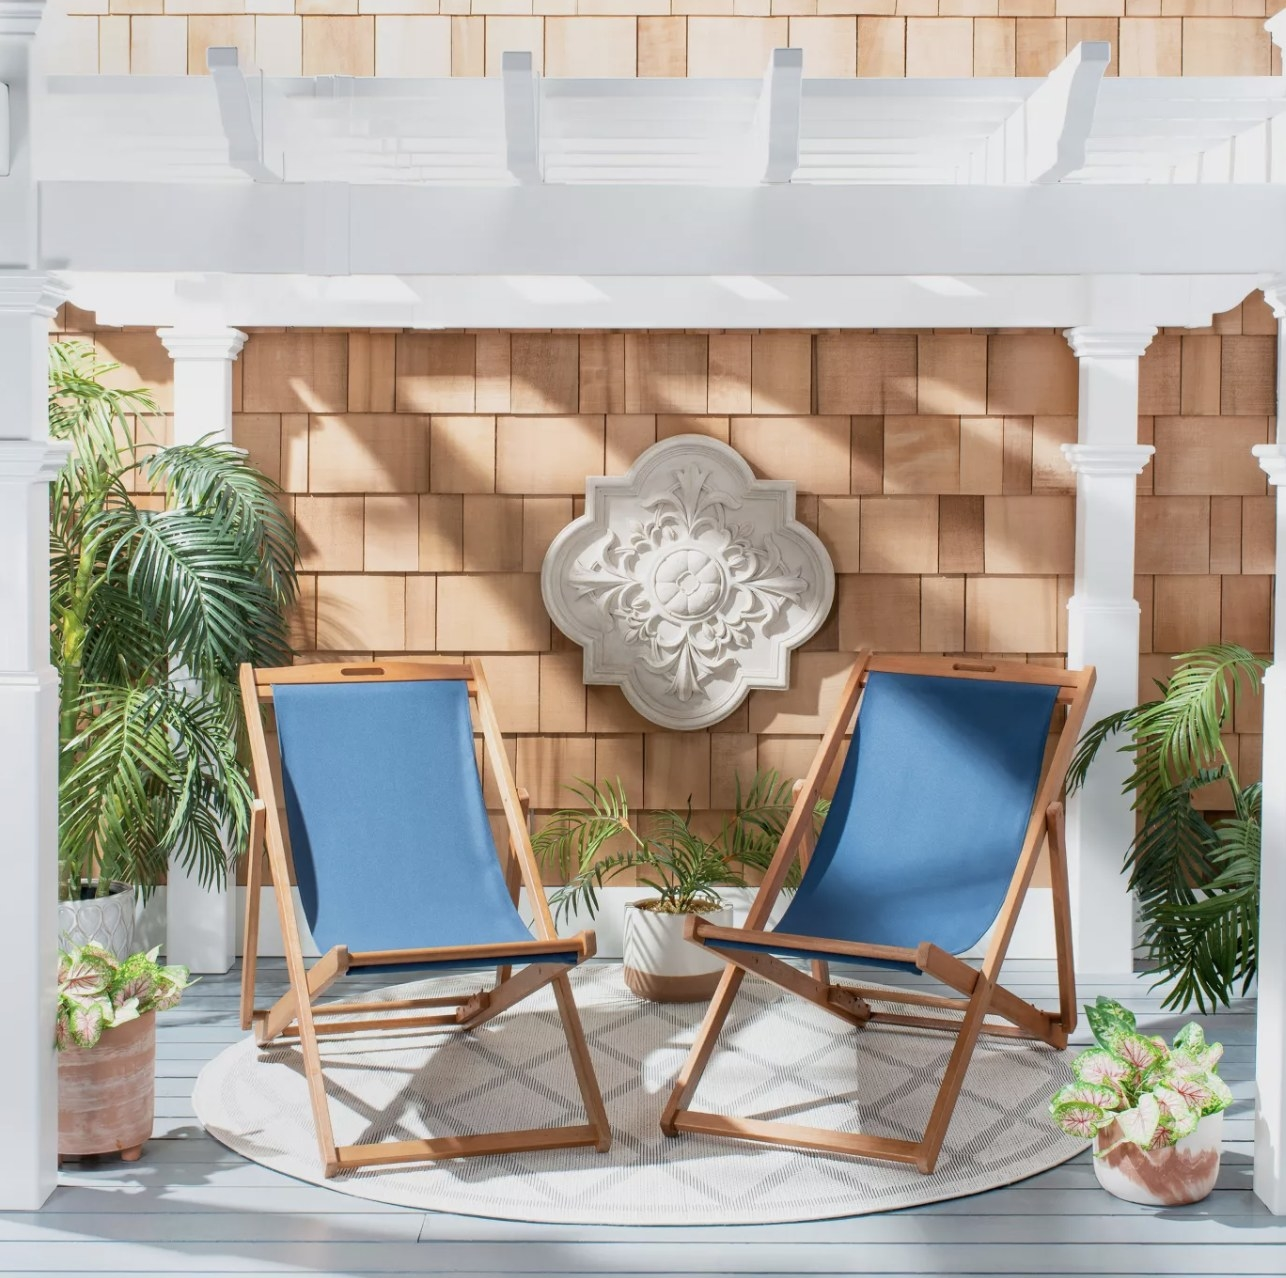 The two blue sling chairs